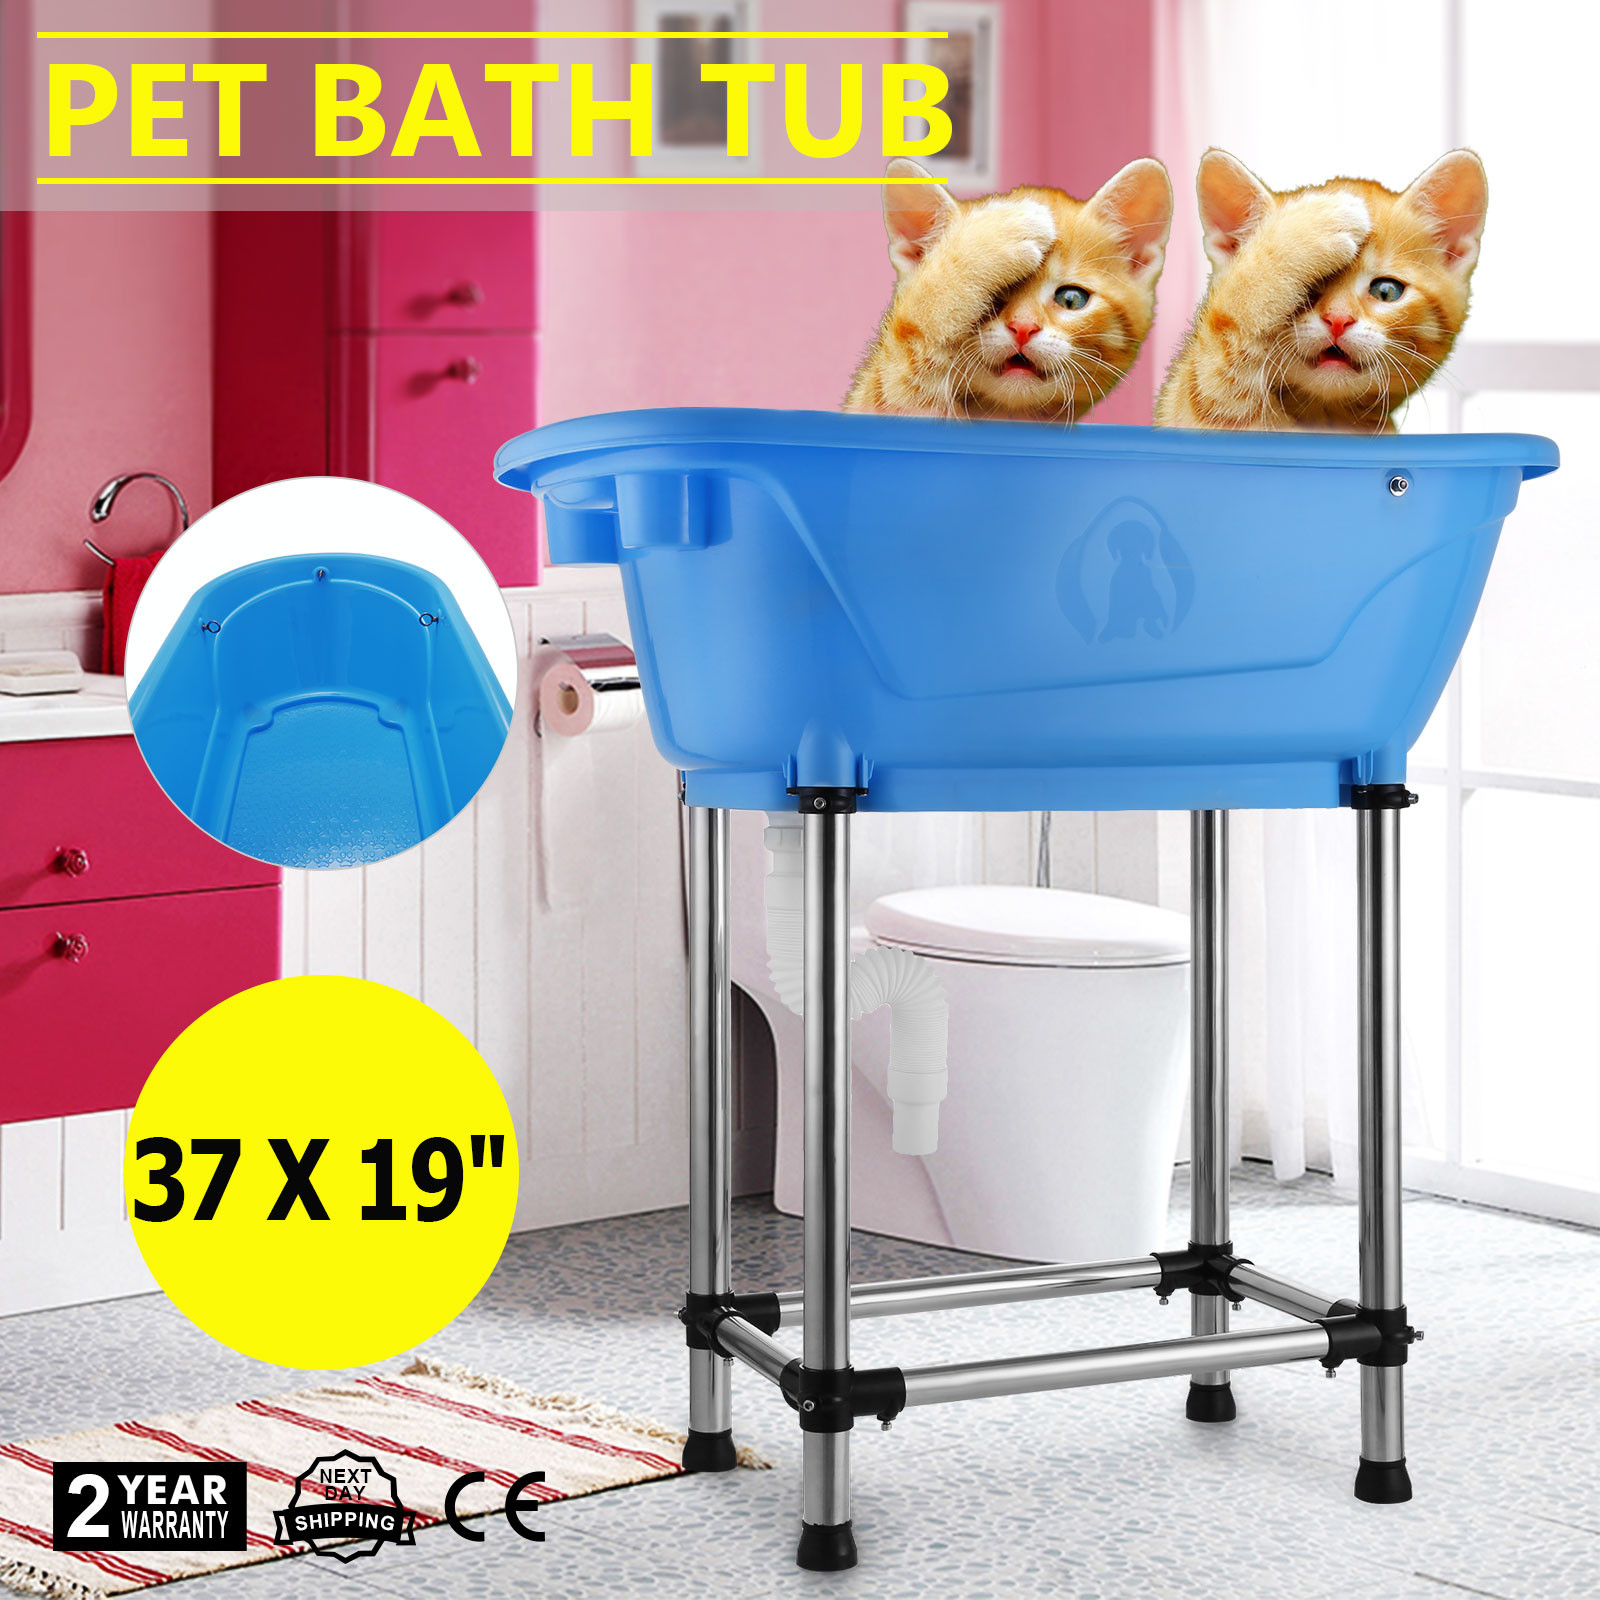 An amazing new dog washing system ensures that your pooch will be head-to-toe clean without any of the usual headaches.